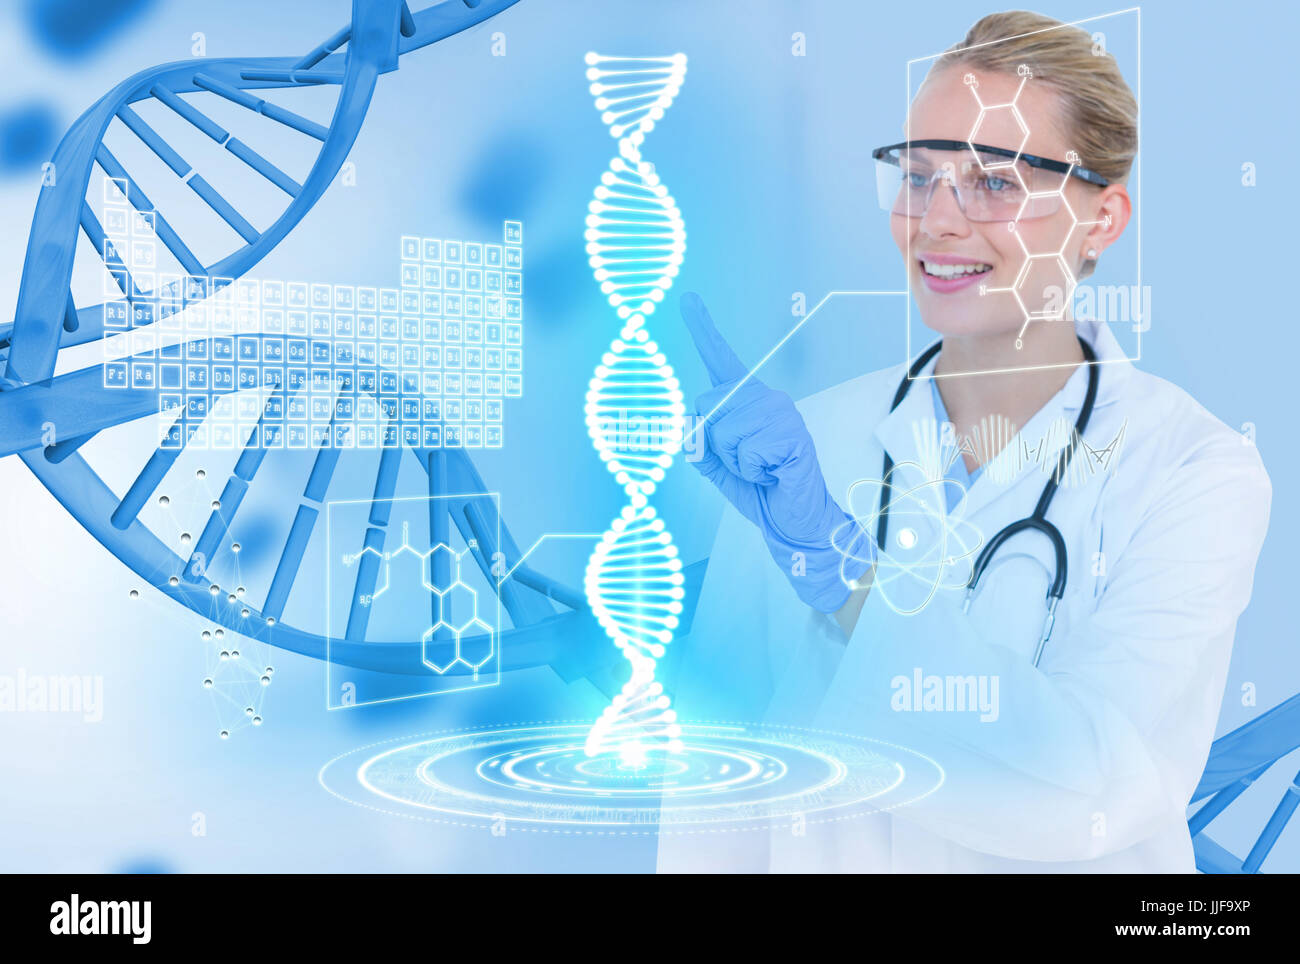 Digital composite of Medical models with DNA graphics or backgrounds - Stock Image